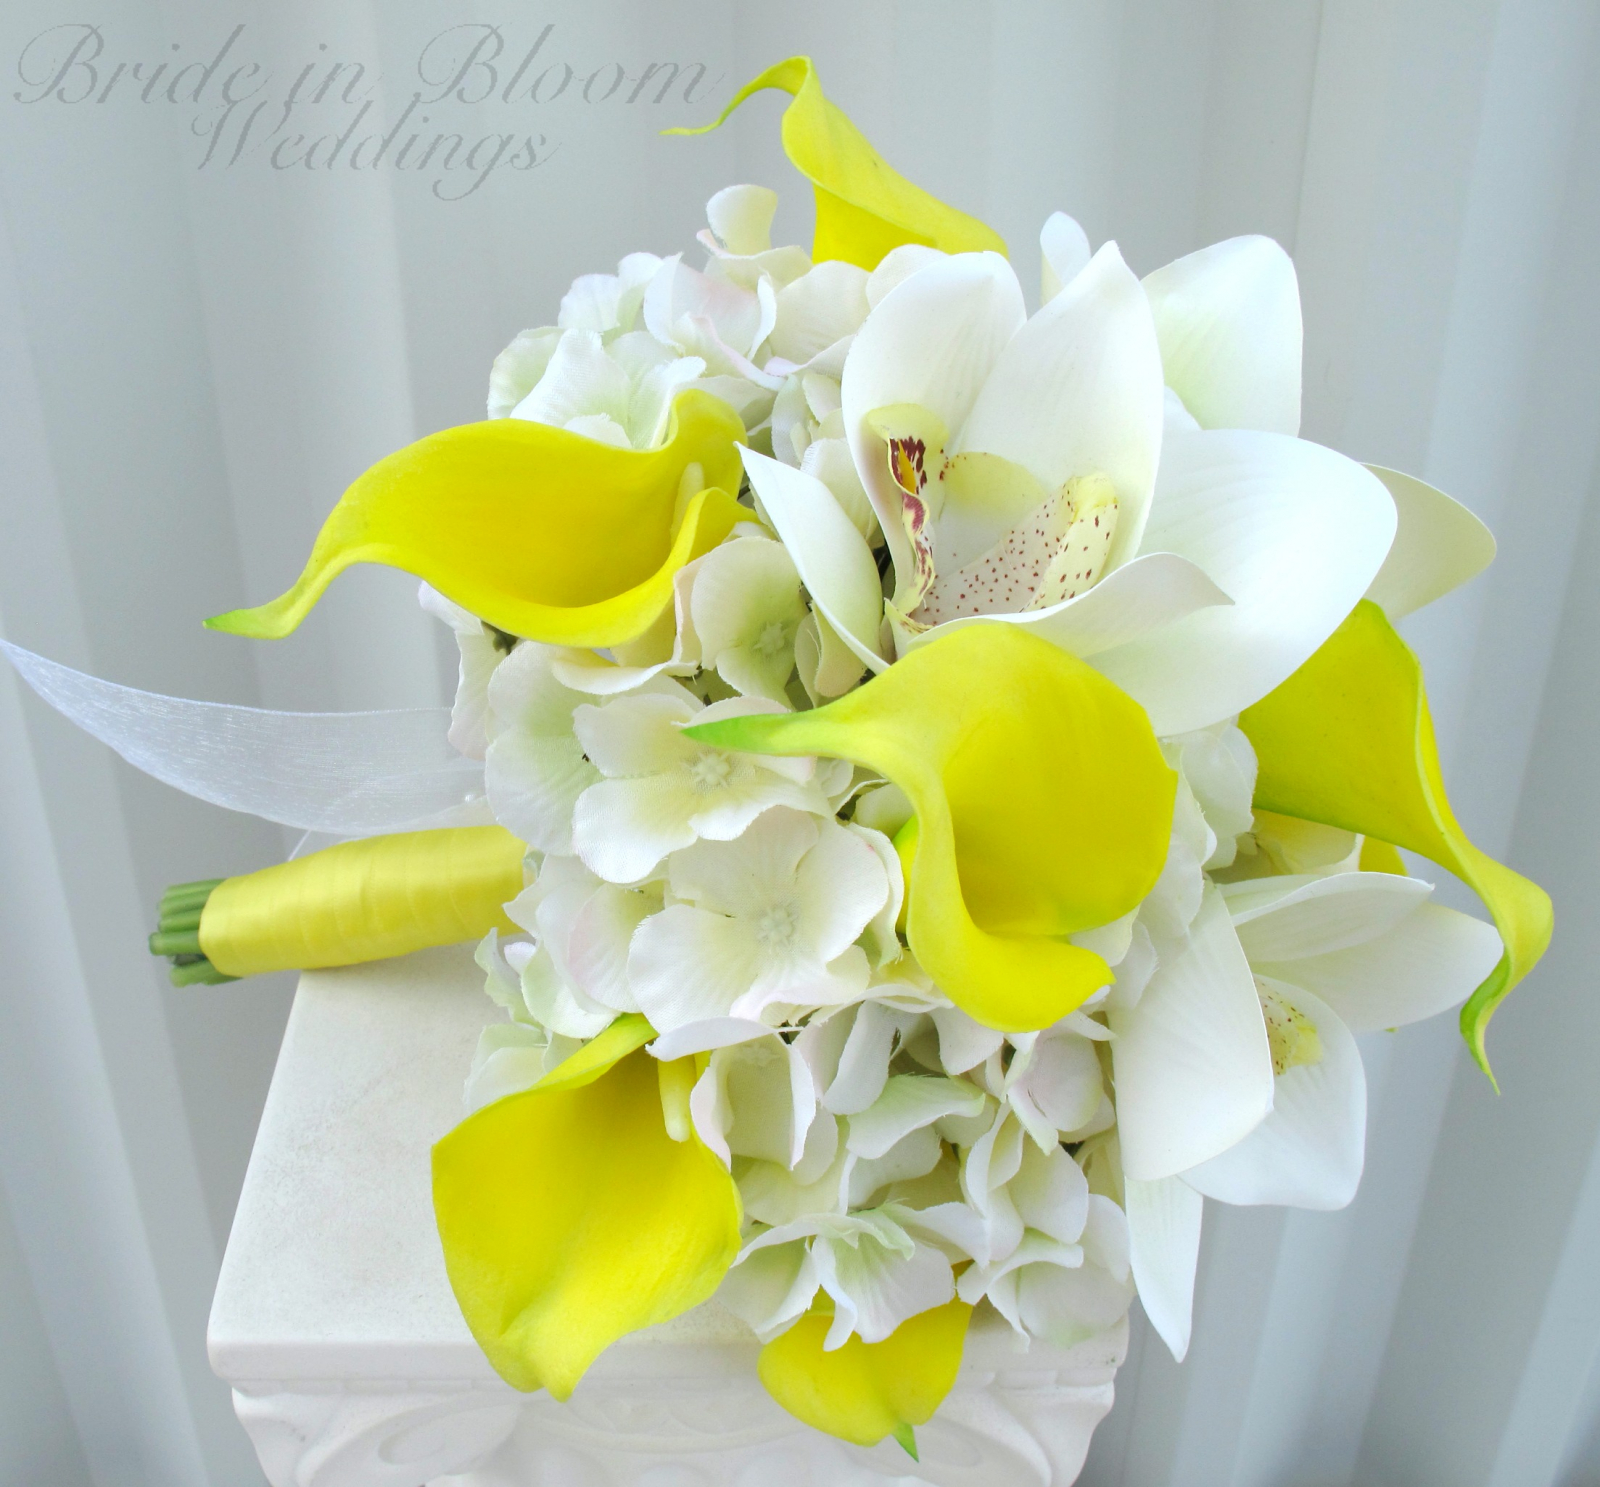 Yellow calla lily orchid wedding bouquet bride in bloom yellow calla lily orchid wedding bouquet silk bridal flowers izmirmasajfo